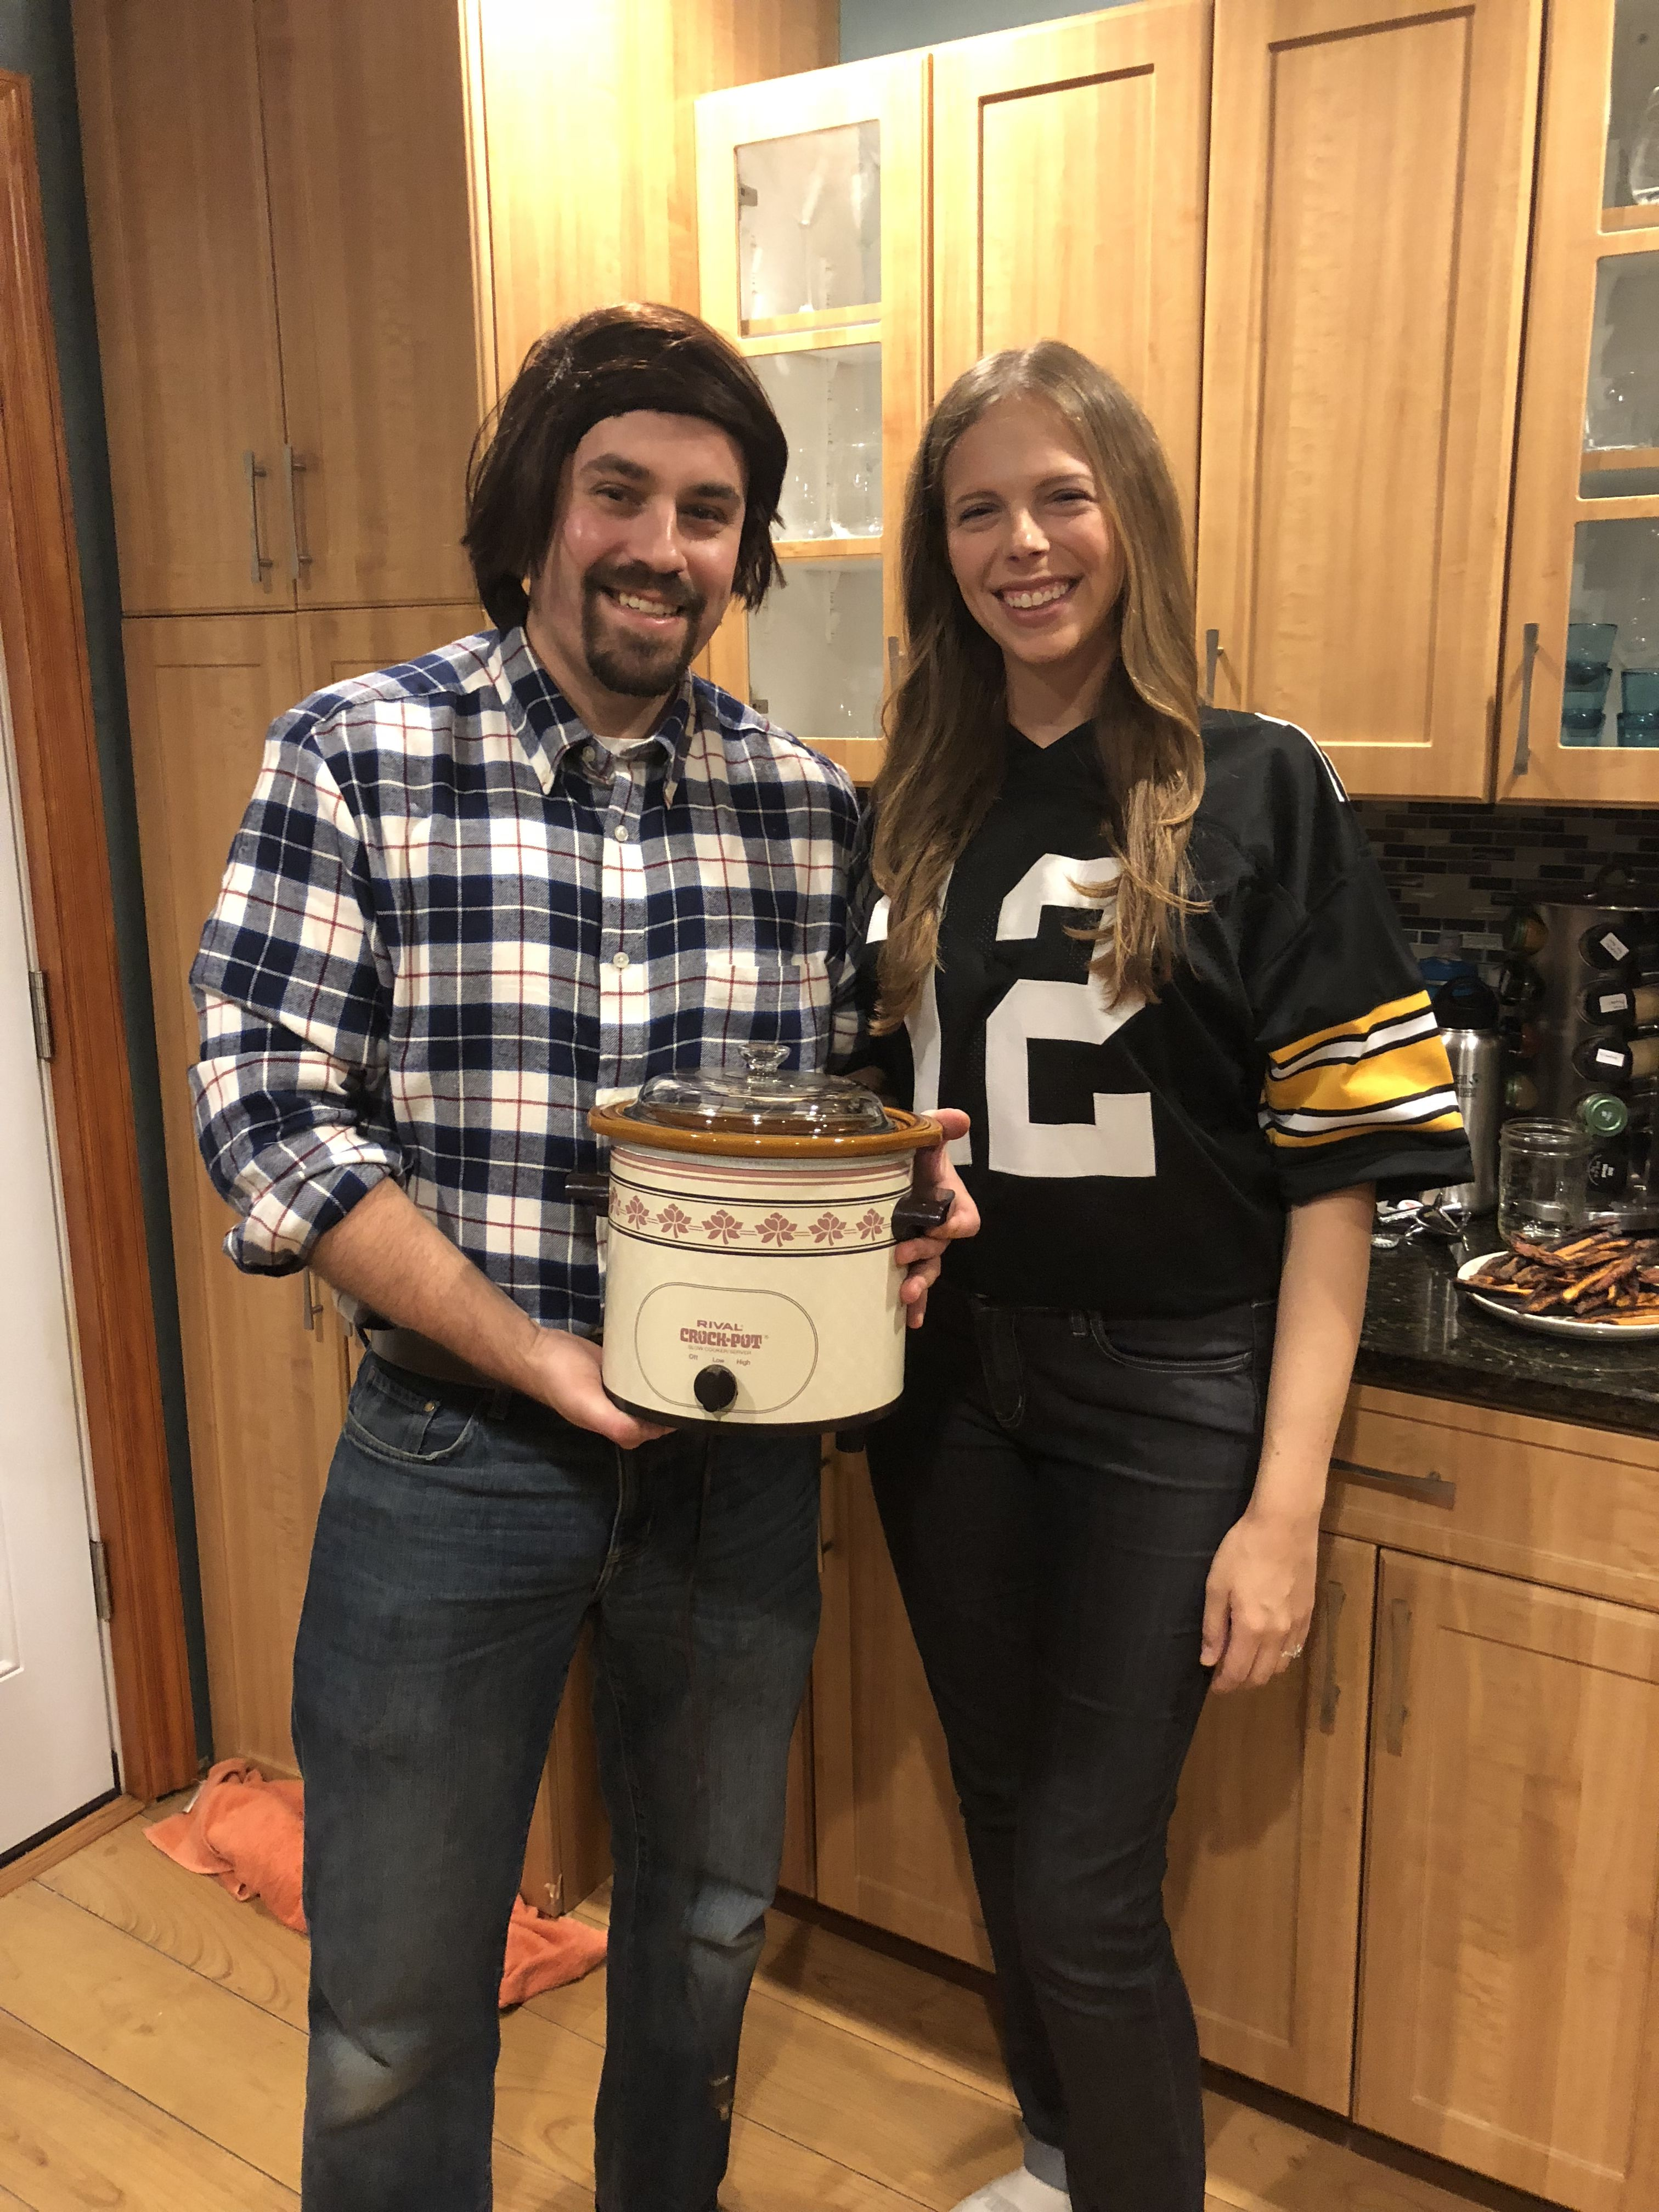 Jack and Rebecca From 'This Is Us' Halloween Costume